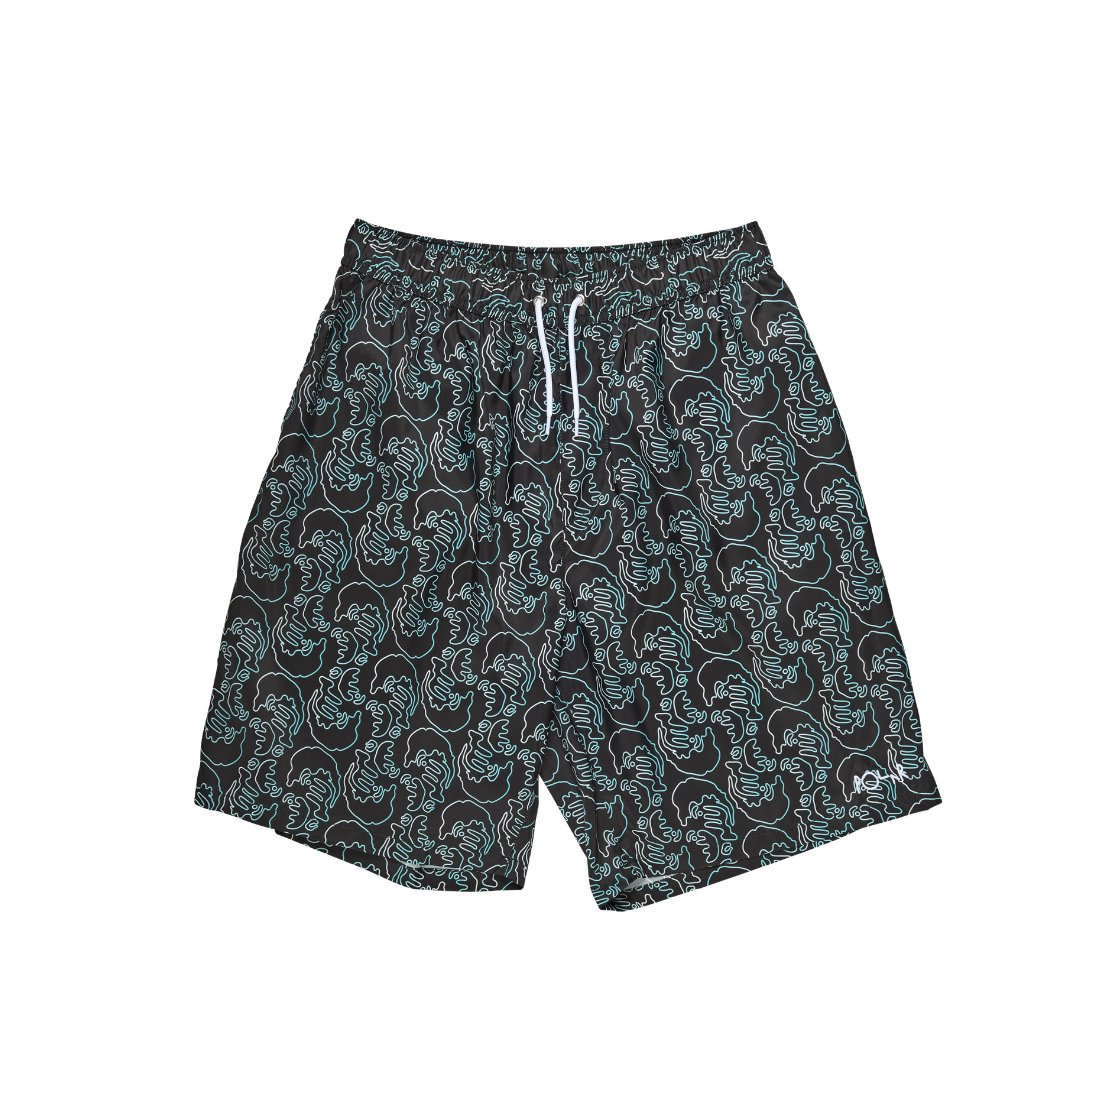 【POLAR SKATE CO.】Art Swim Shorts - Black